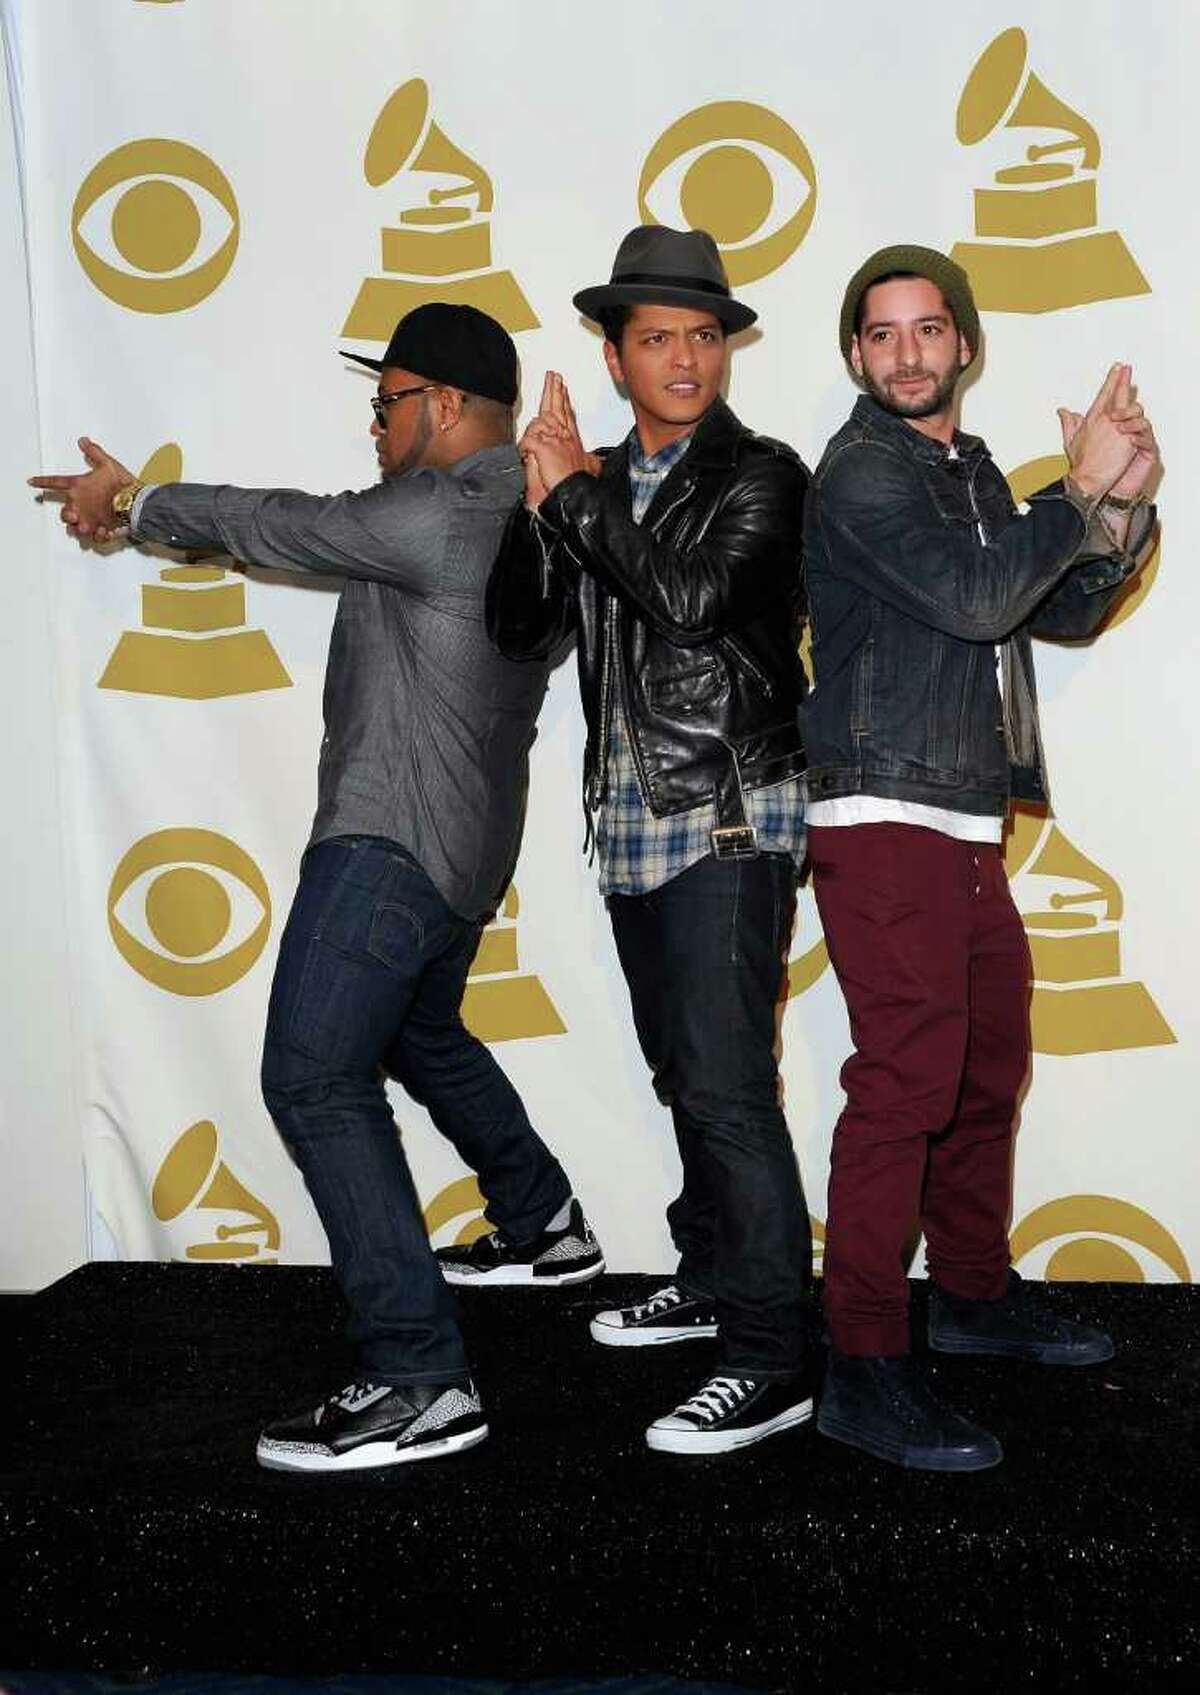 LOS ANGELES, CA - NOVEMBER 30: (L-R) Producer Philip Lawrence; musician Bruno Mars, and producer Ari Levine pose in media room at The GRAMMY Nominations Concert Live! Countdown to Music's Biggest Night at Nokia Theatre L.A. Live on November 30, 2011 in Los Angeles, California.